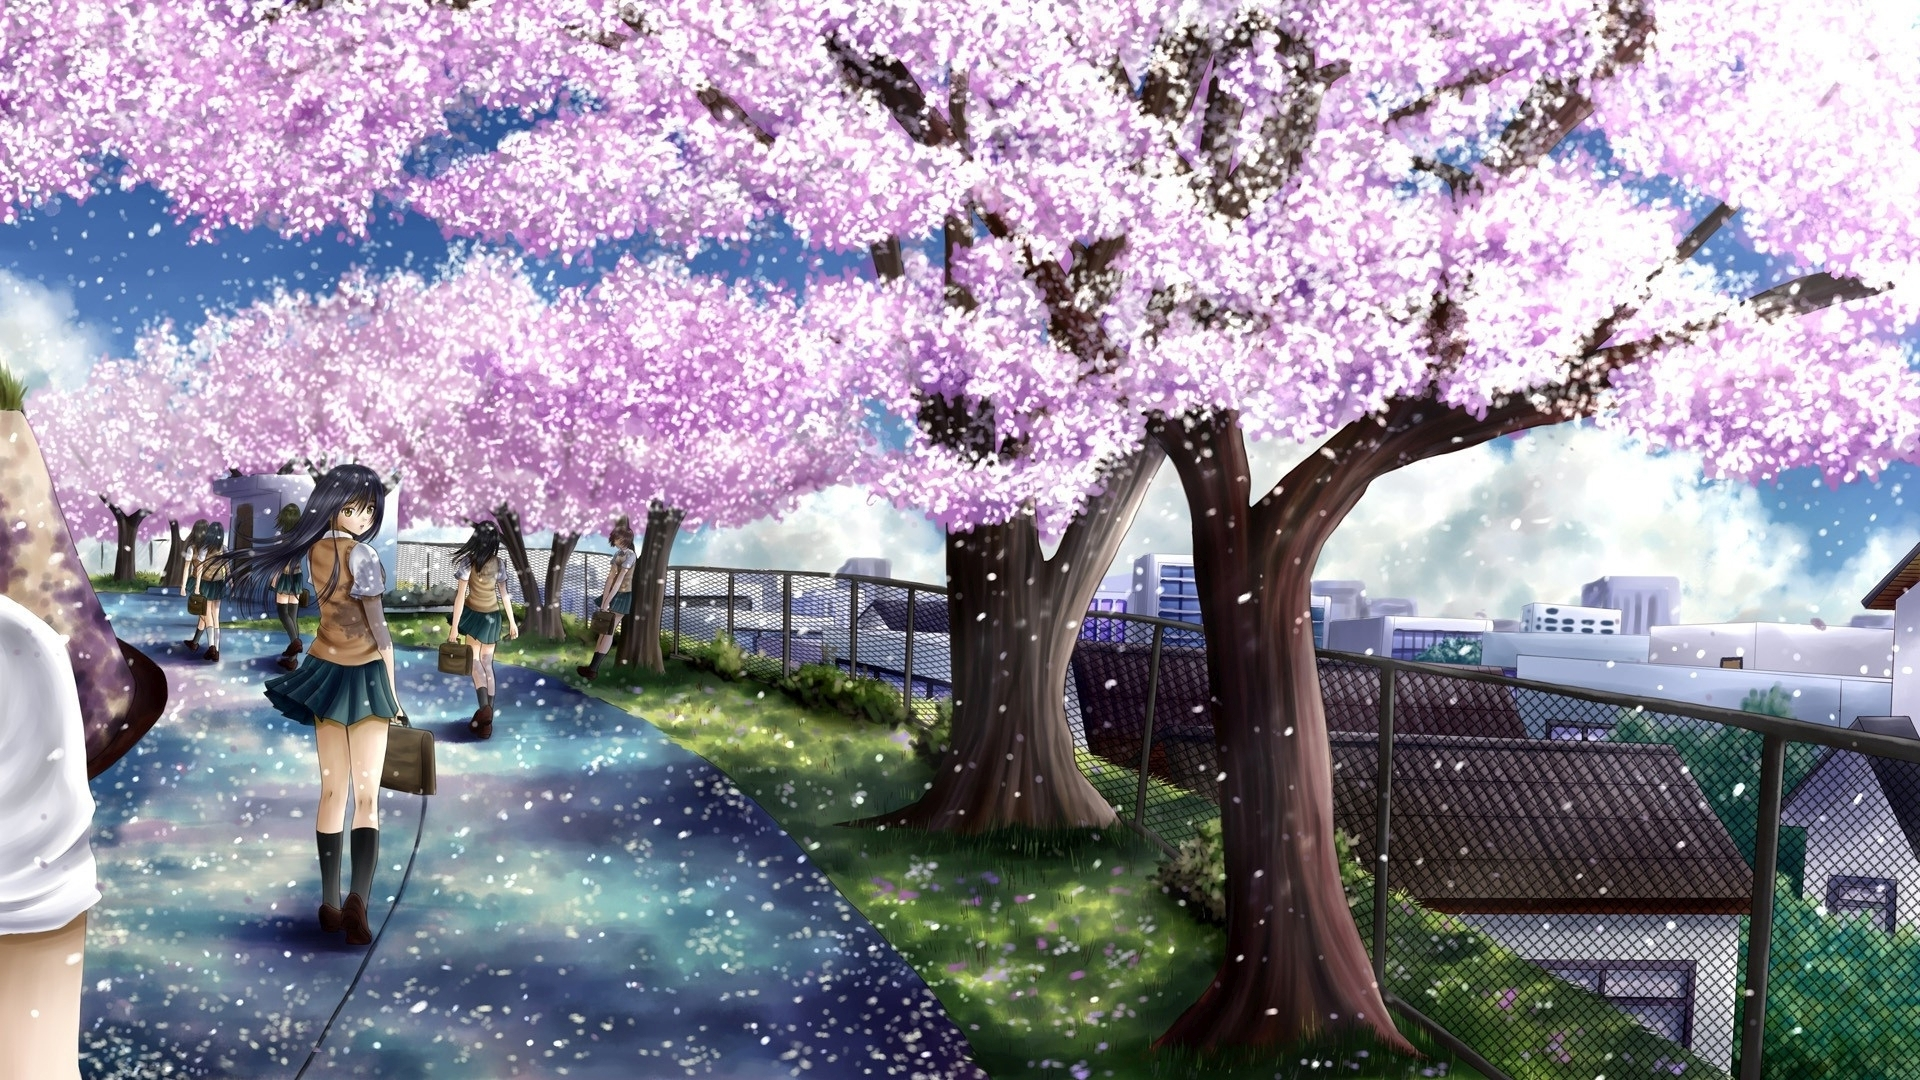 Title Wallpaperwiki Anime Cherry Blossom Full Hd Wallpaper Pic Wpc0012431 Dimension 1920 X 1080 File Type JPG JPEG